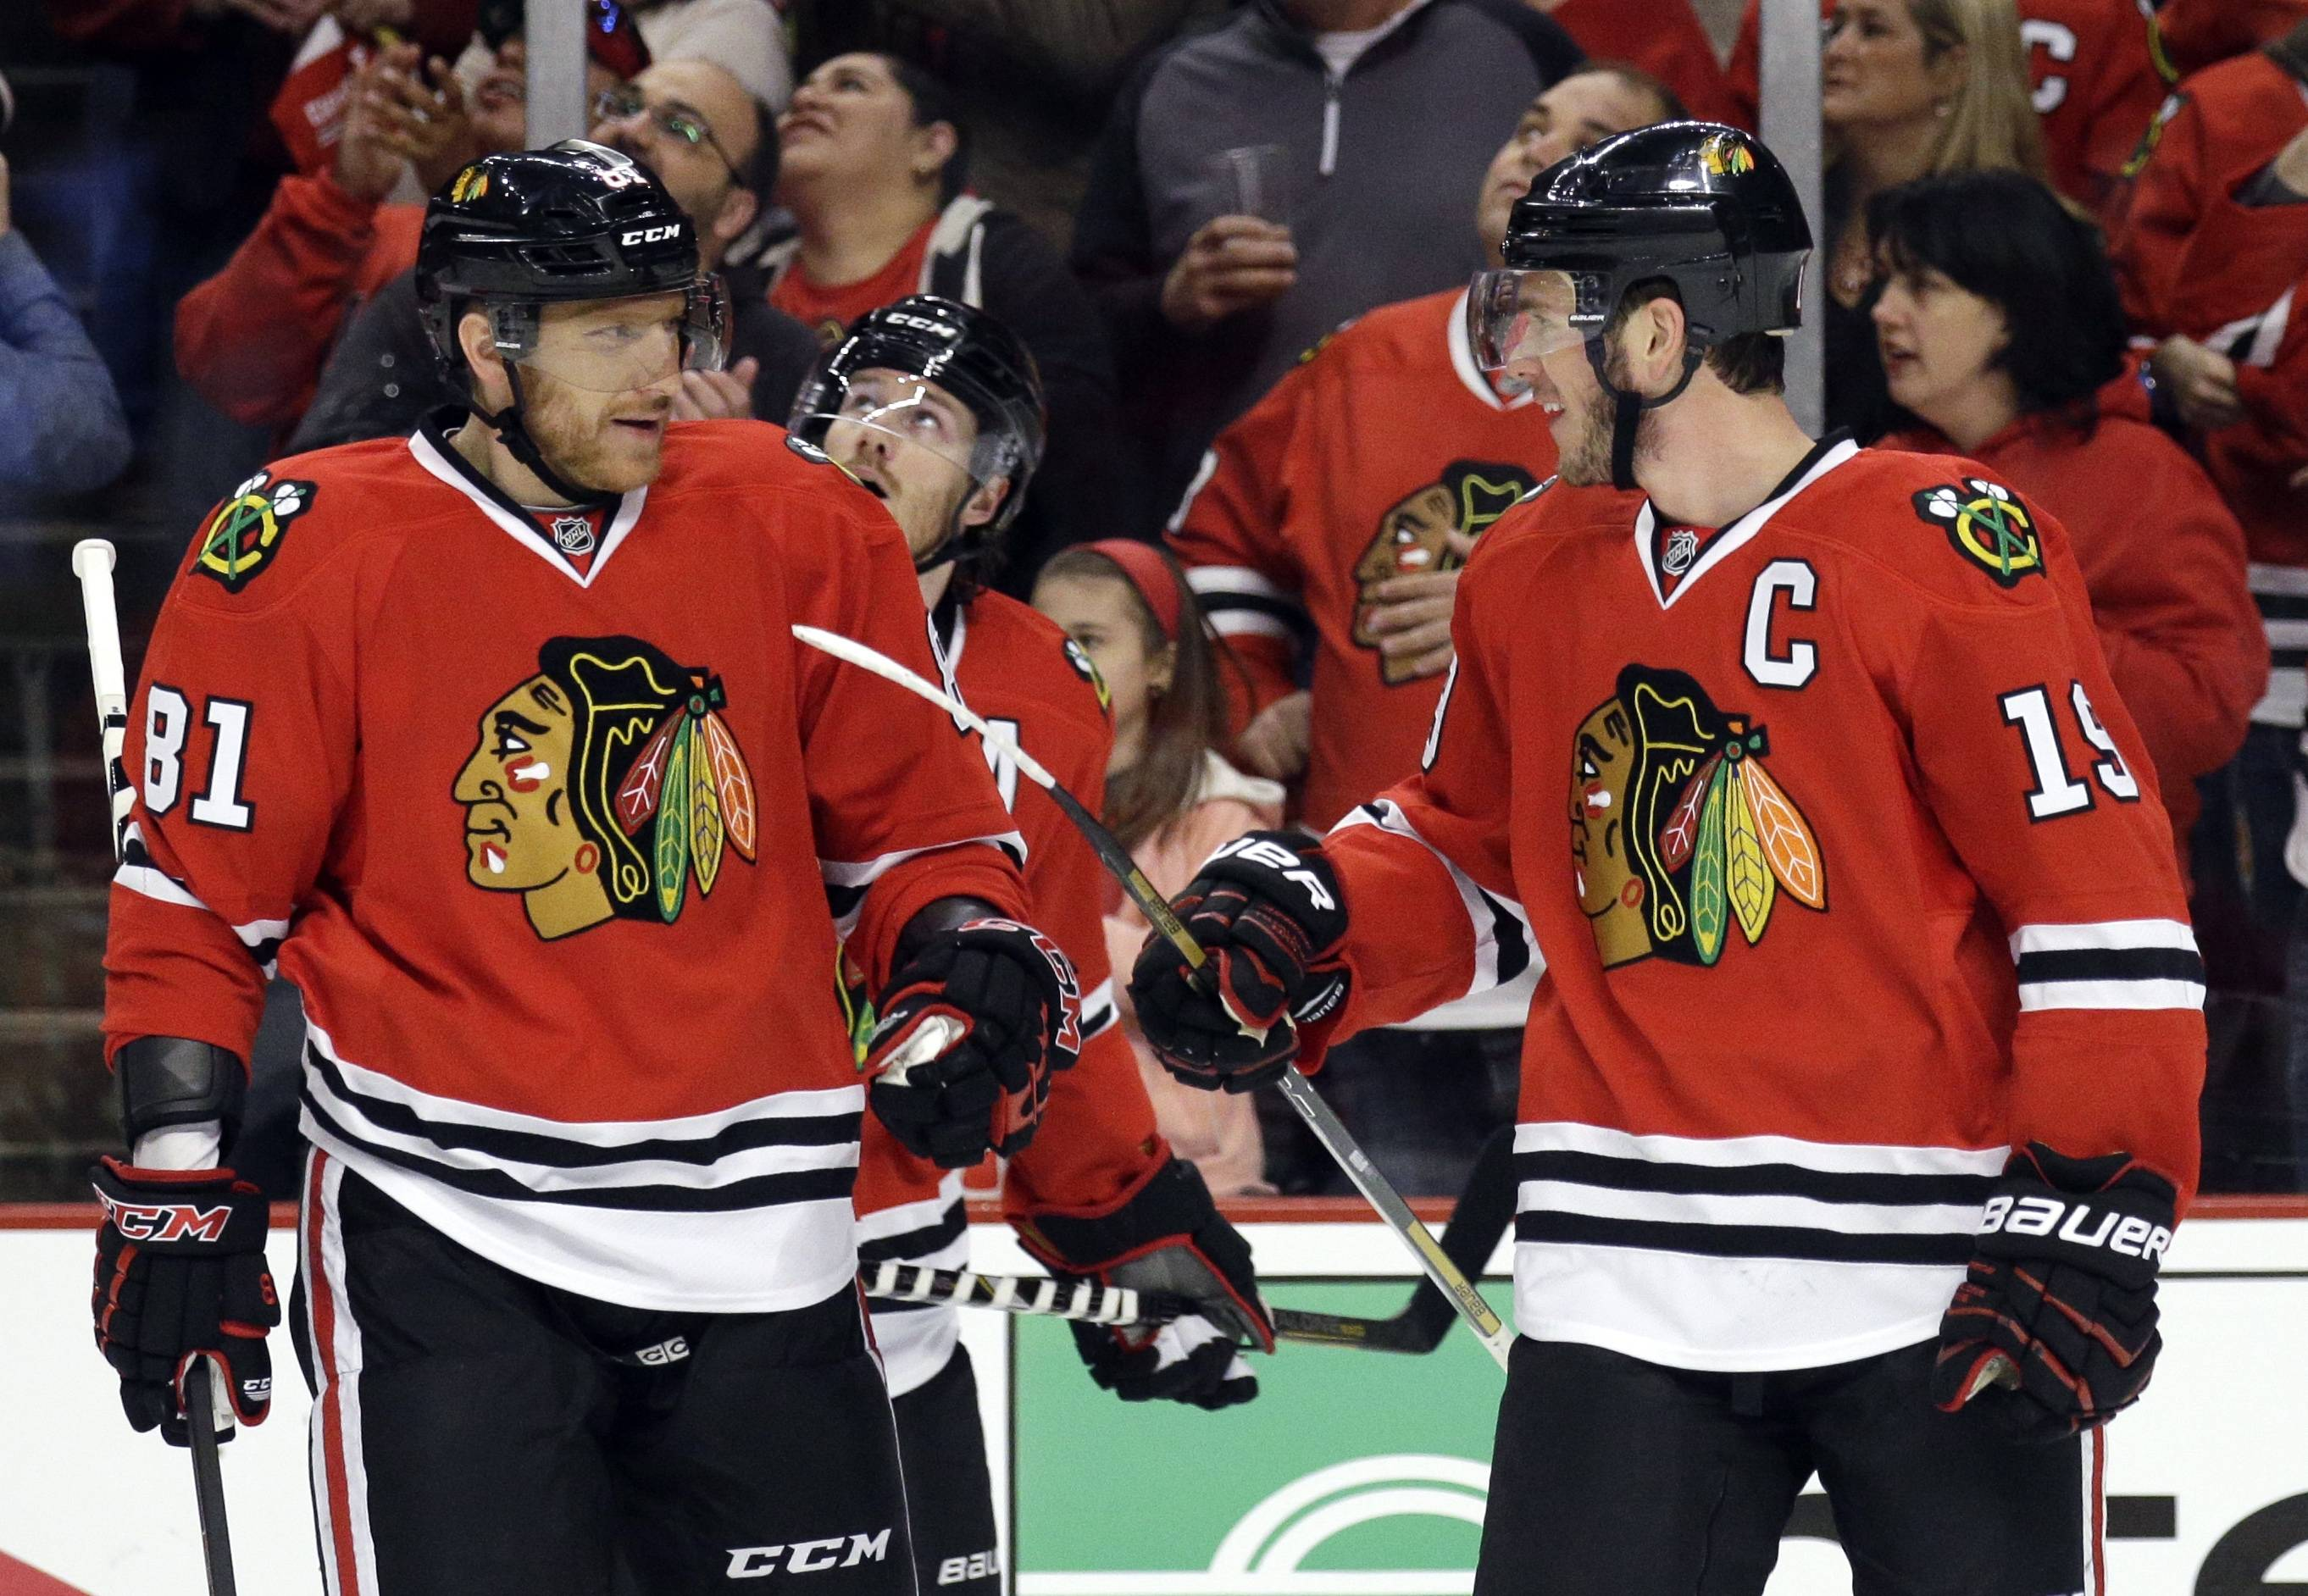 Chicago Blackhawks' Jonathan Toews (19), right, smiles as he celebrates with Marian Hossa (81) after scoring hi goal during the first period.